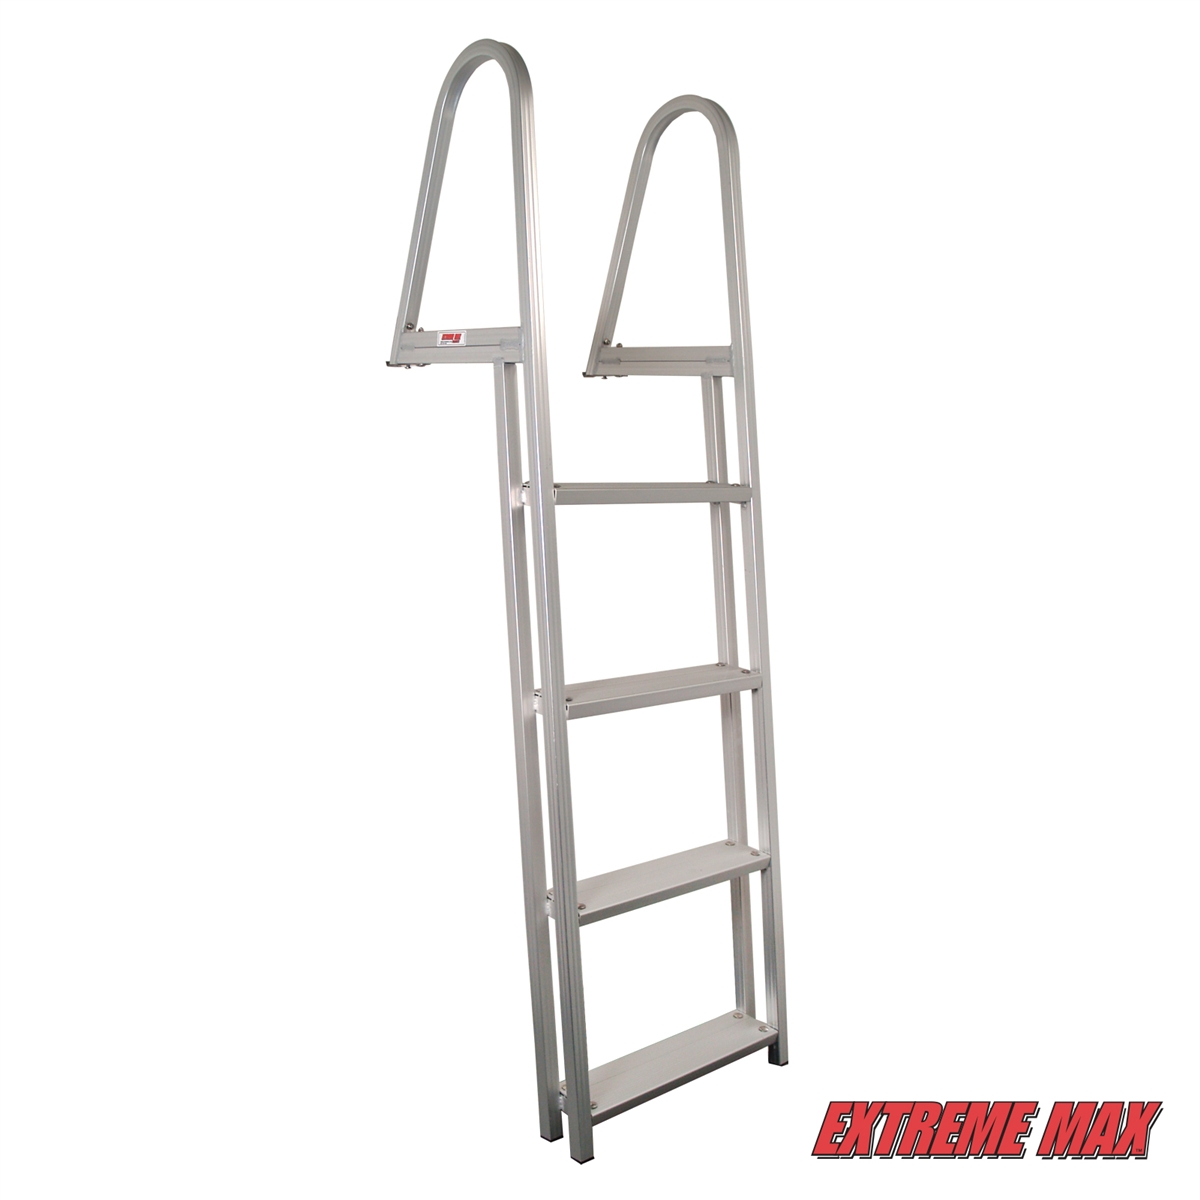 Extreme Max Boarding Ladder Ladder Dock Ladder Pontoon